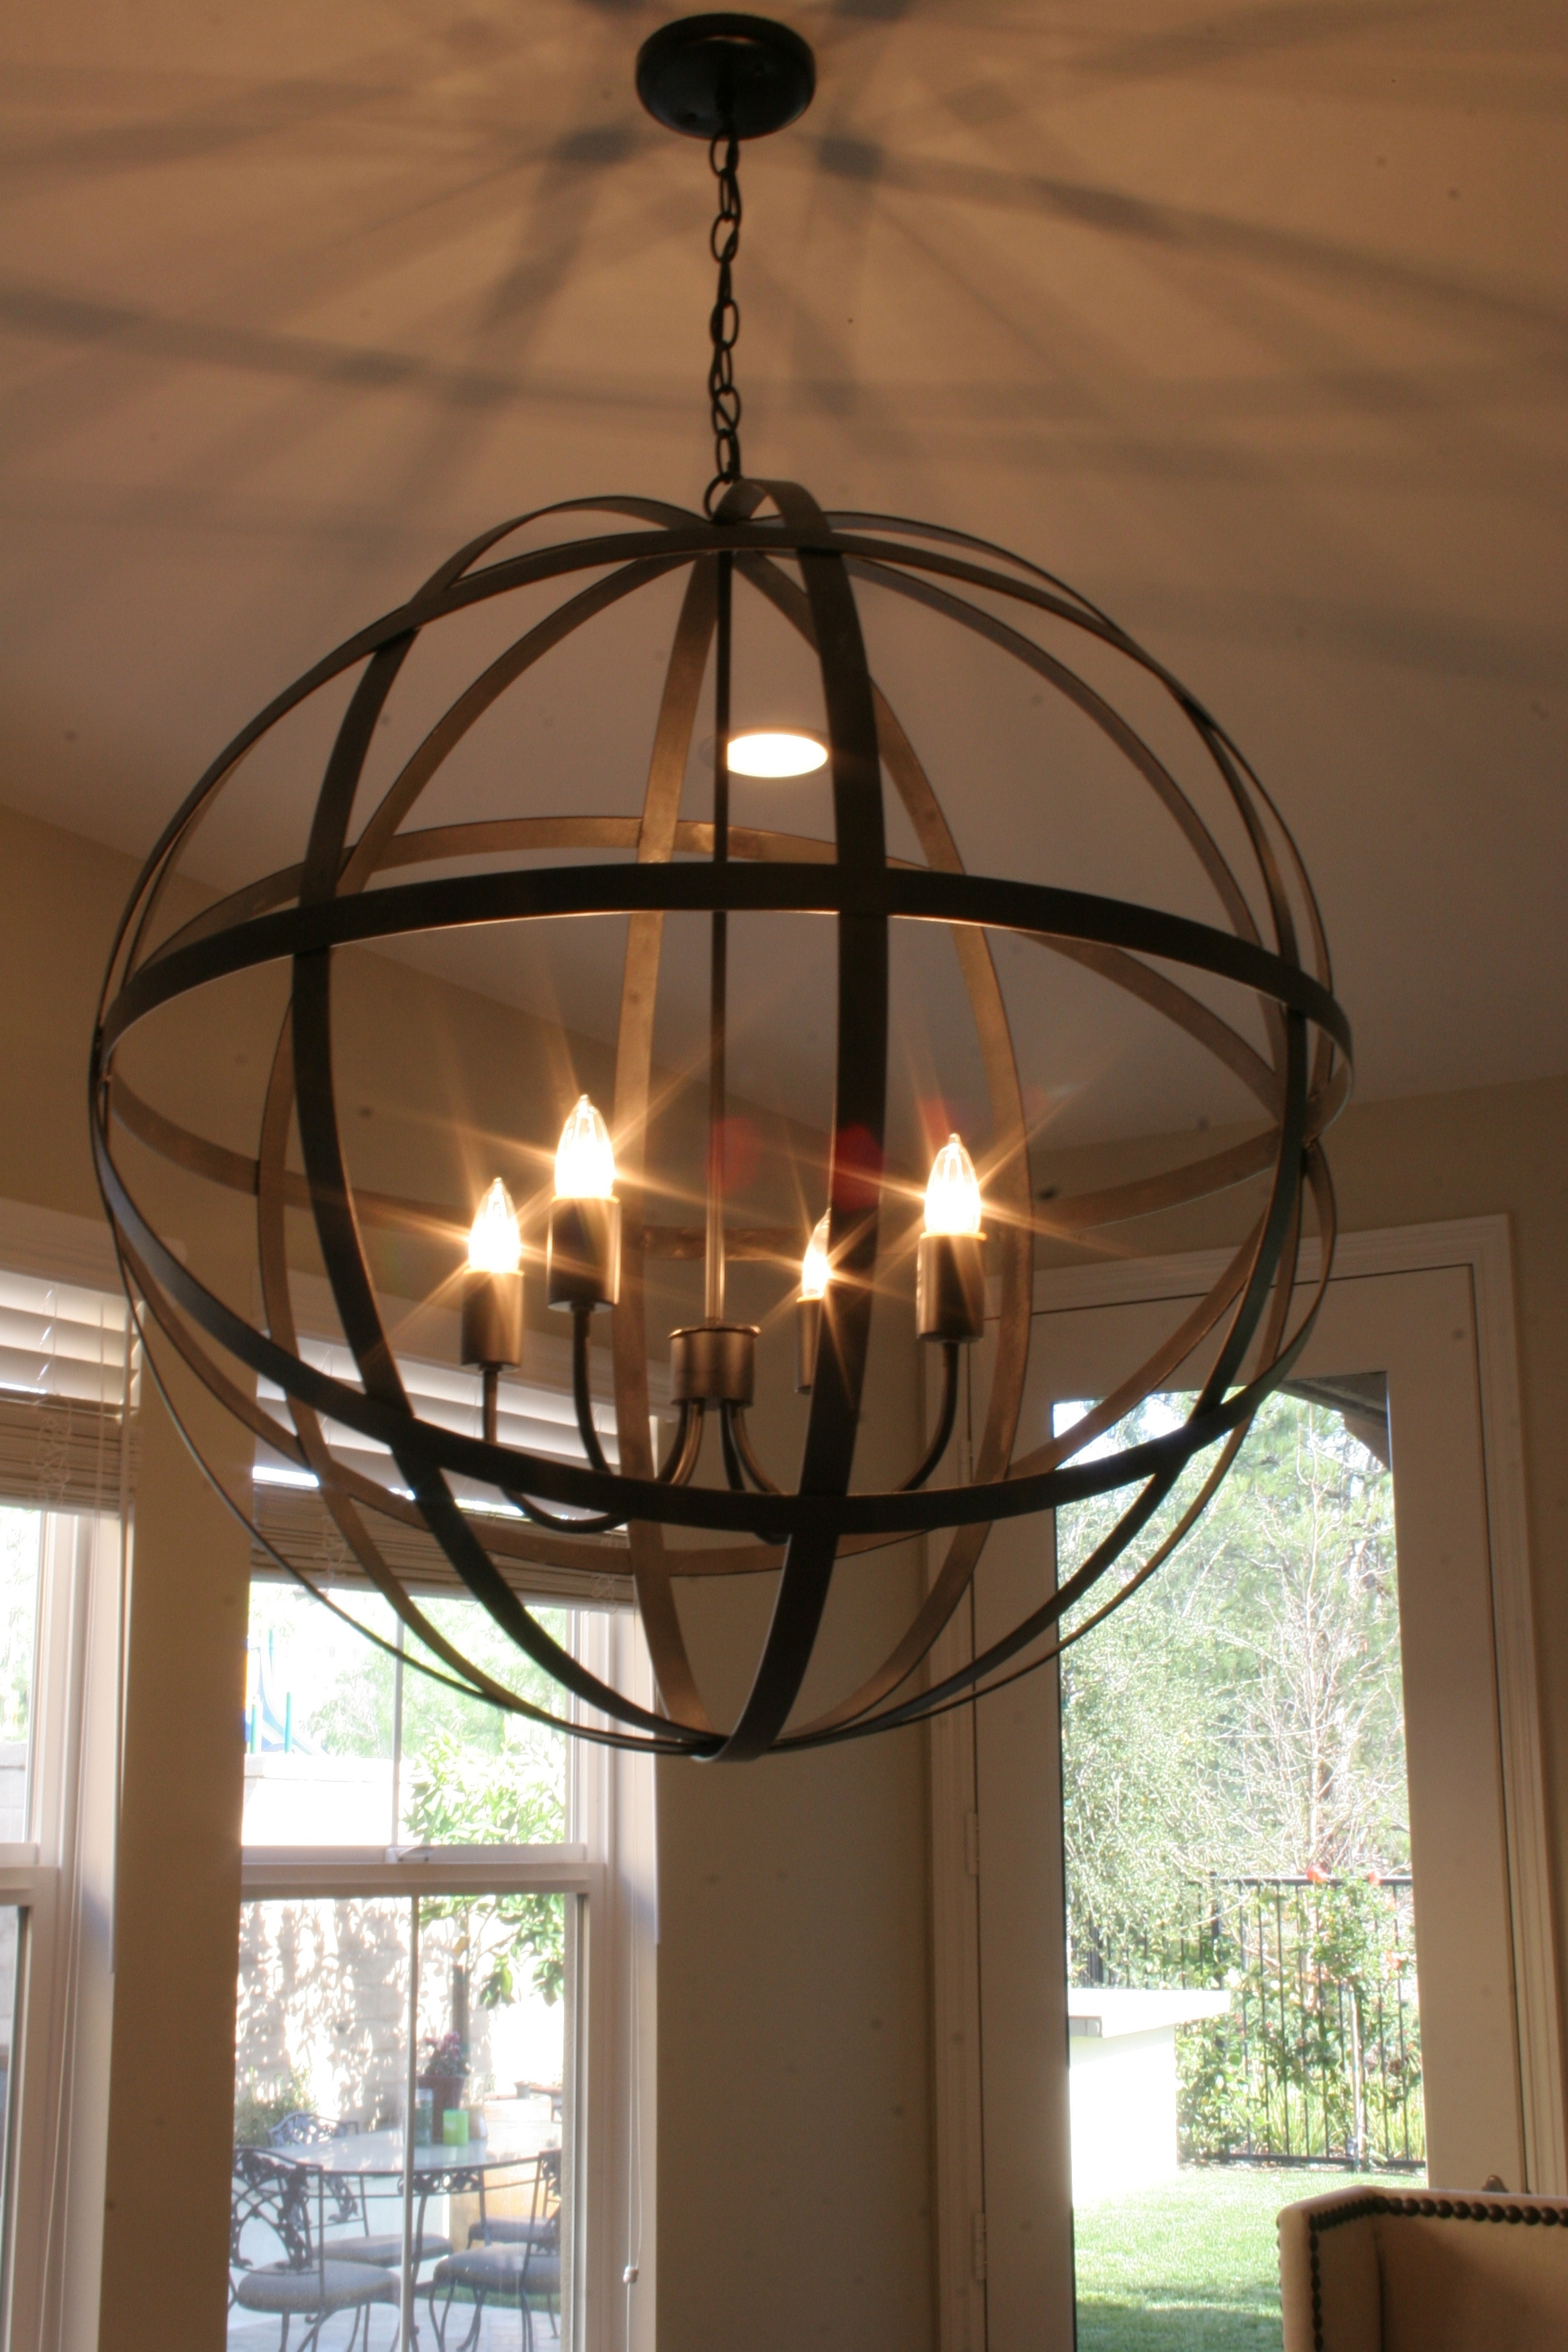 Globe Chandeliers With Regard To Well Known Restoration Hardware Chandelier – Get The Junk Store Guy To Make A (Gallery 3 of 20)